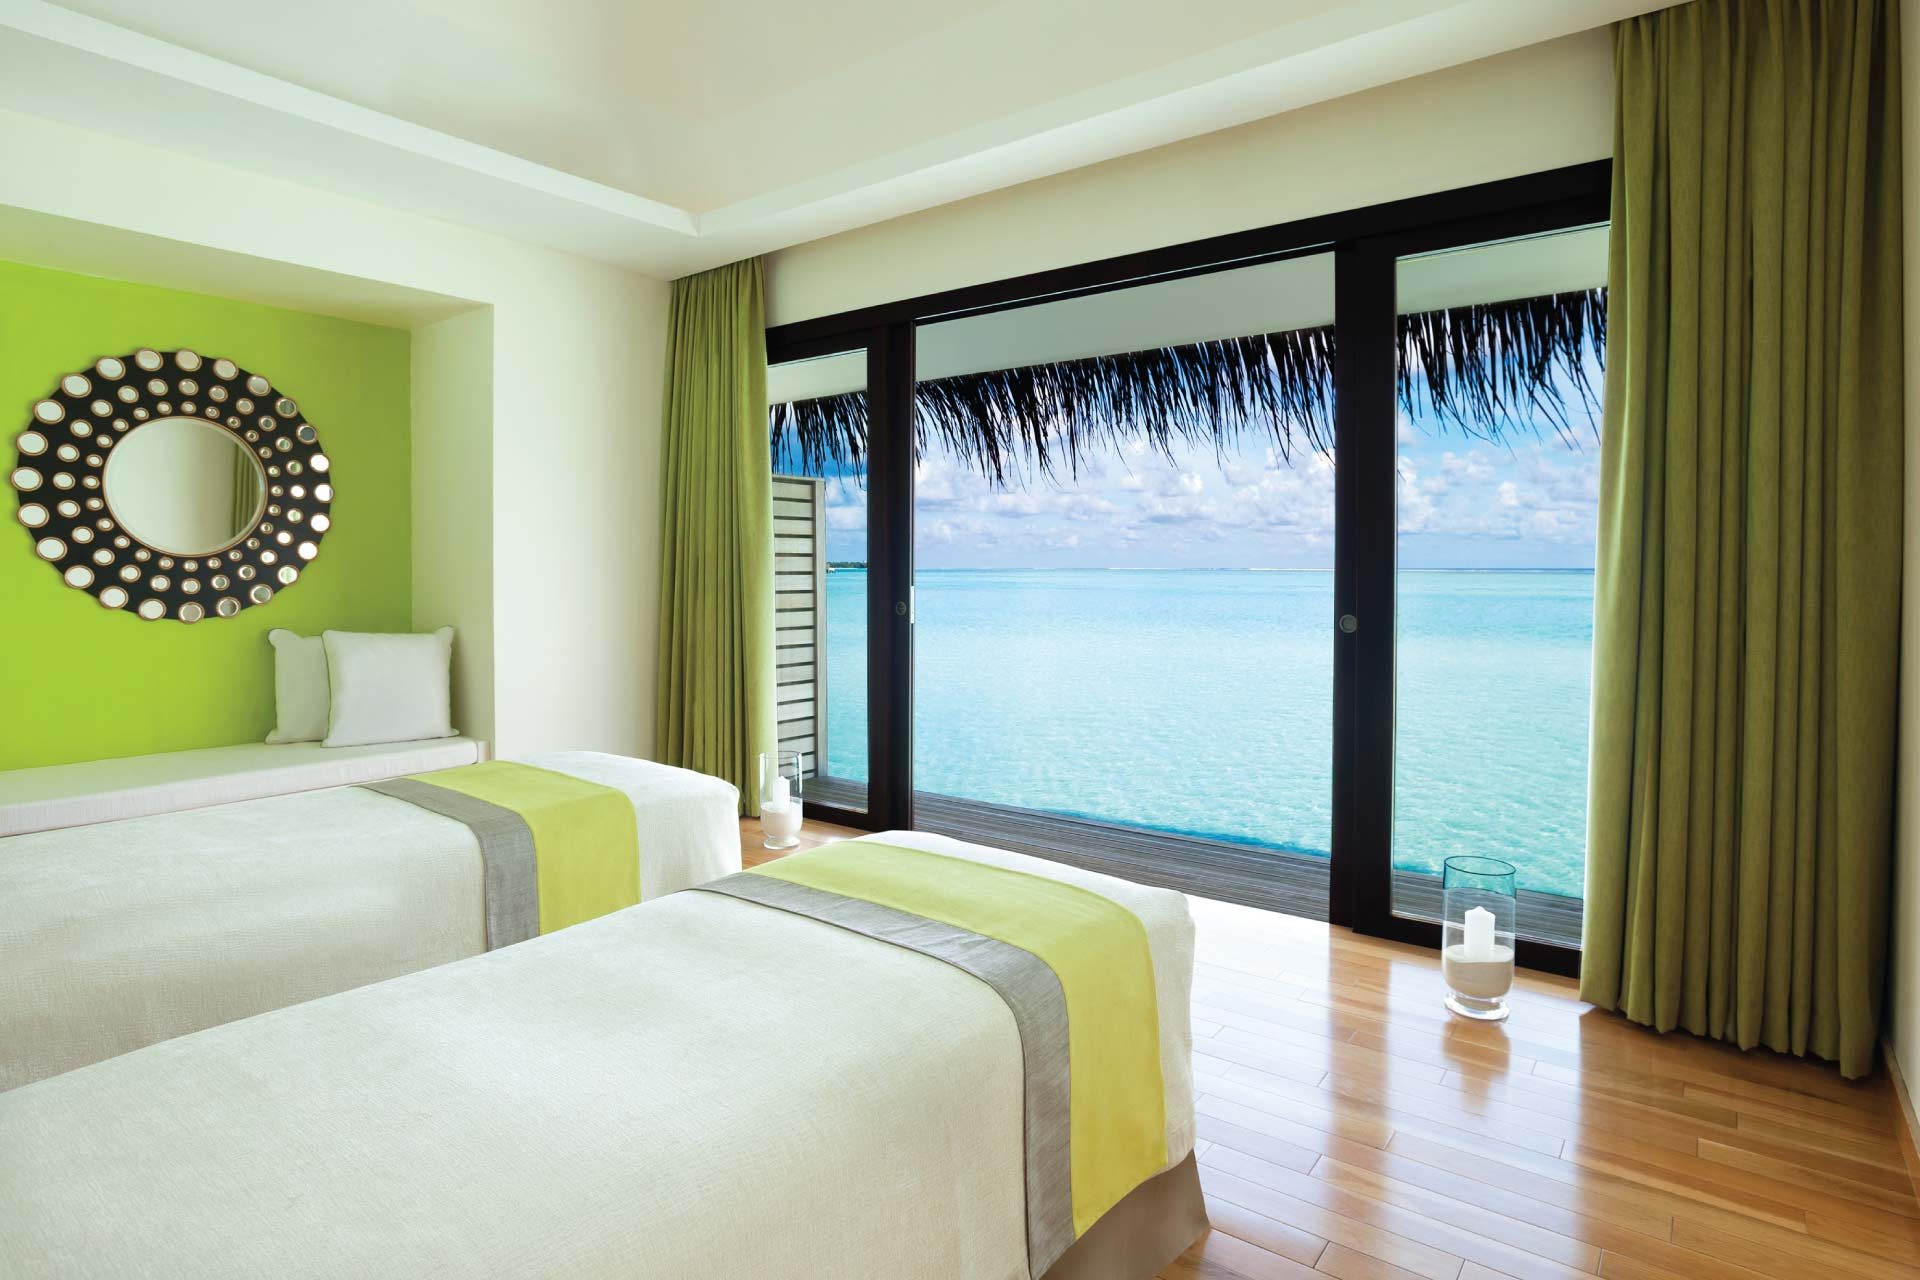 Lime Spa Maldives - most luxurious spas in the world